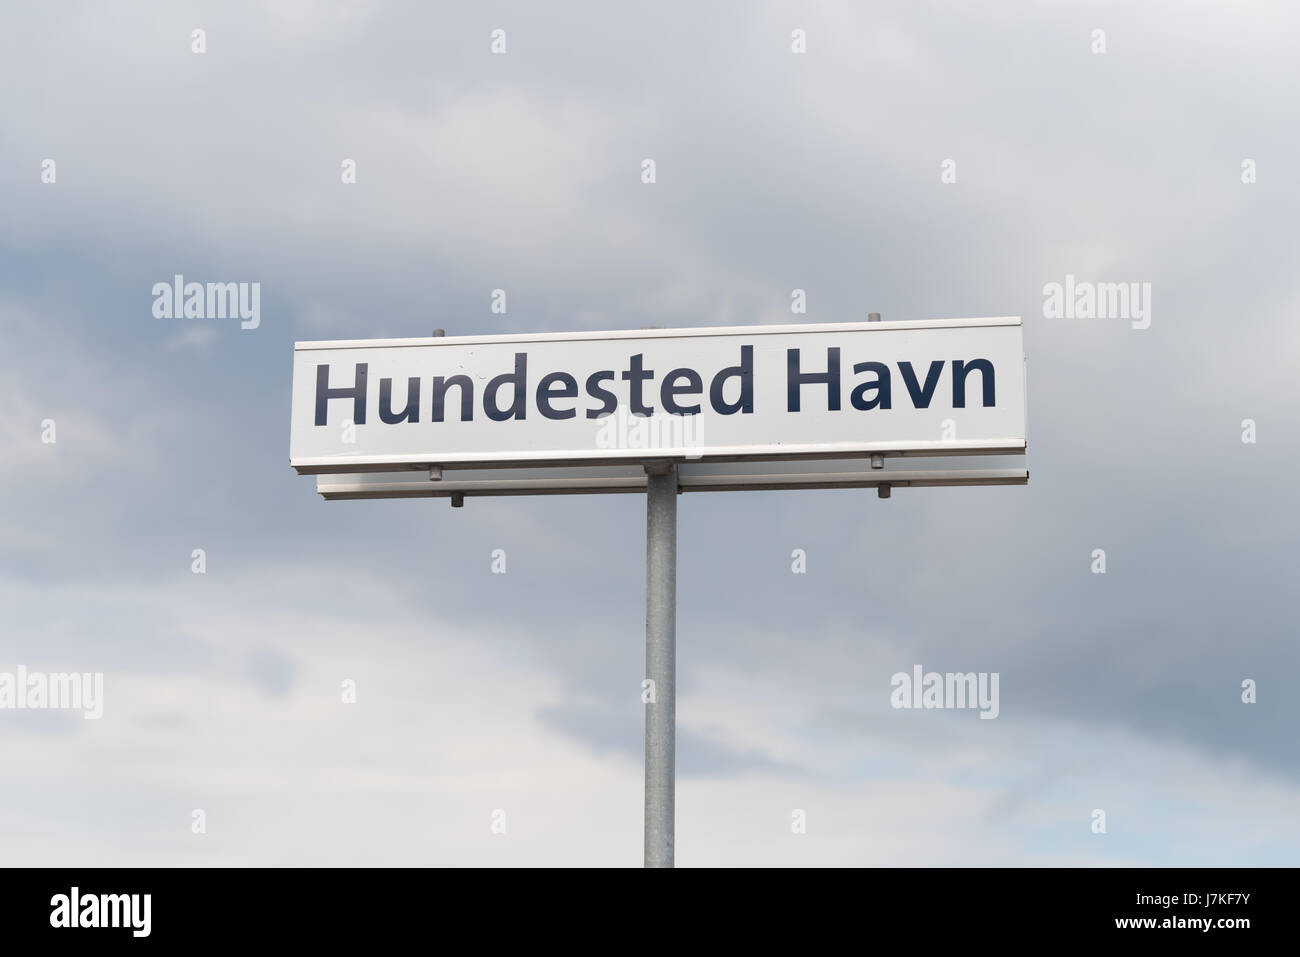 Hundested havn street name shield. Hundested is a small touristic place in the northern of Sealand - Stock Image